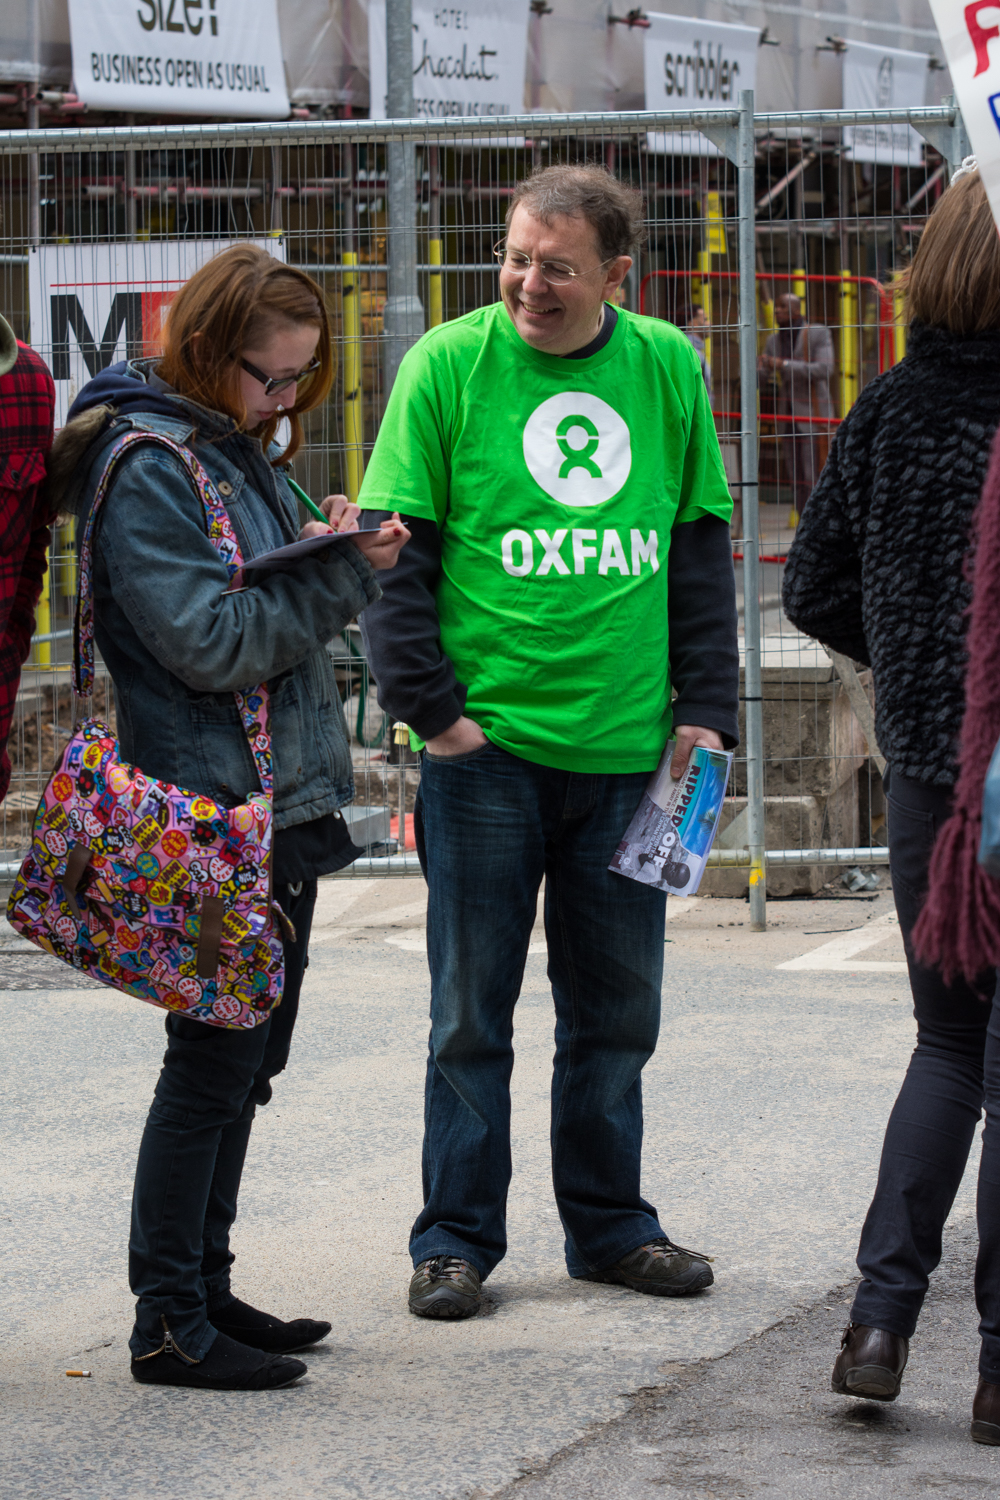 2016 04 16 Oxfam Tax Haven-156.jpg